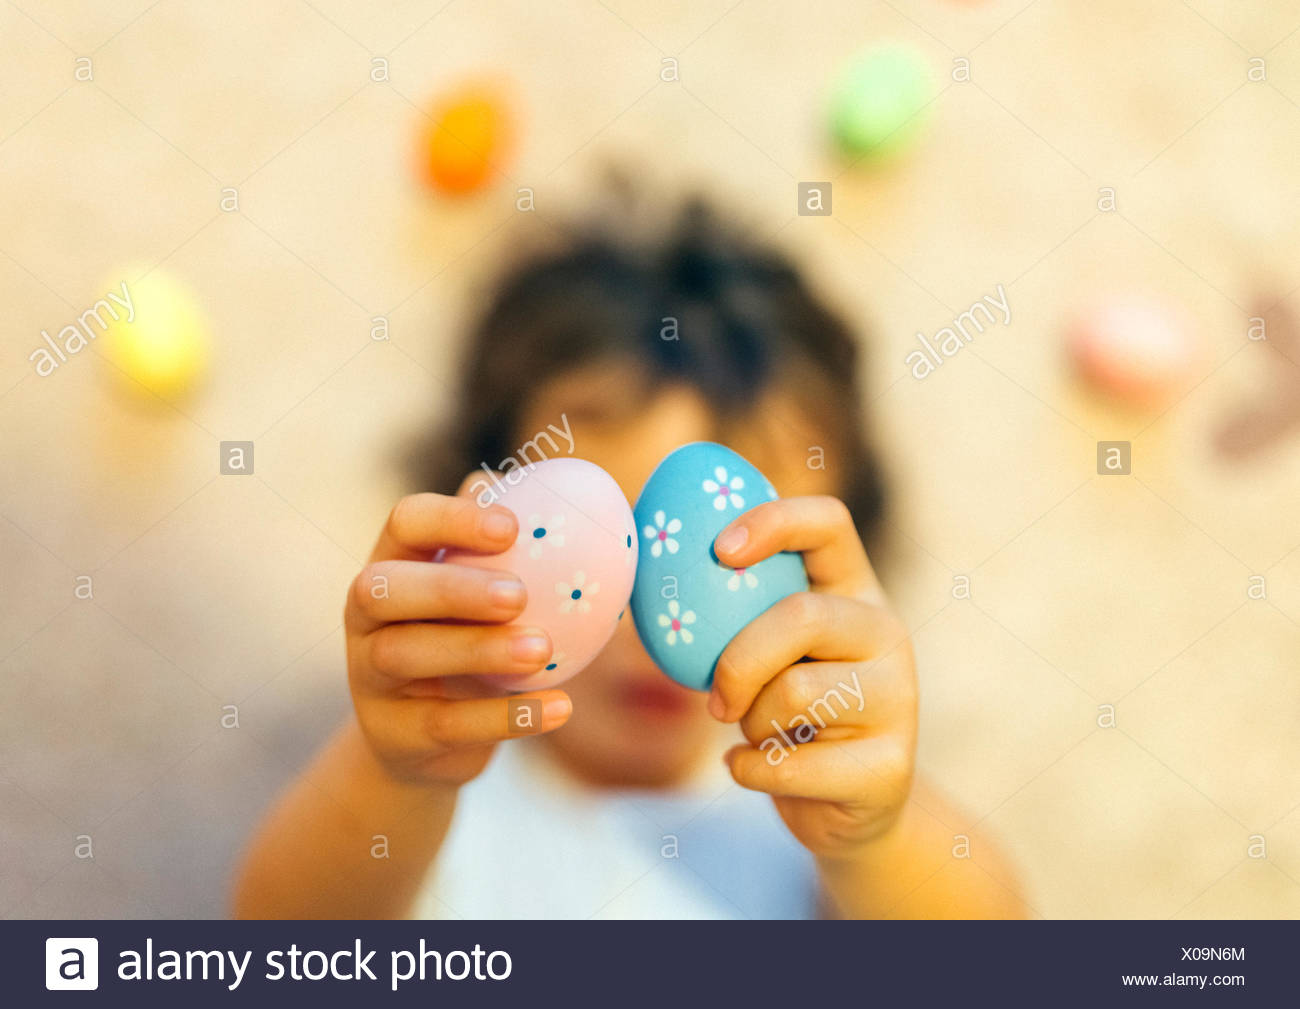 Girl's hands holding two painted Easter eggs - Stock Image